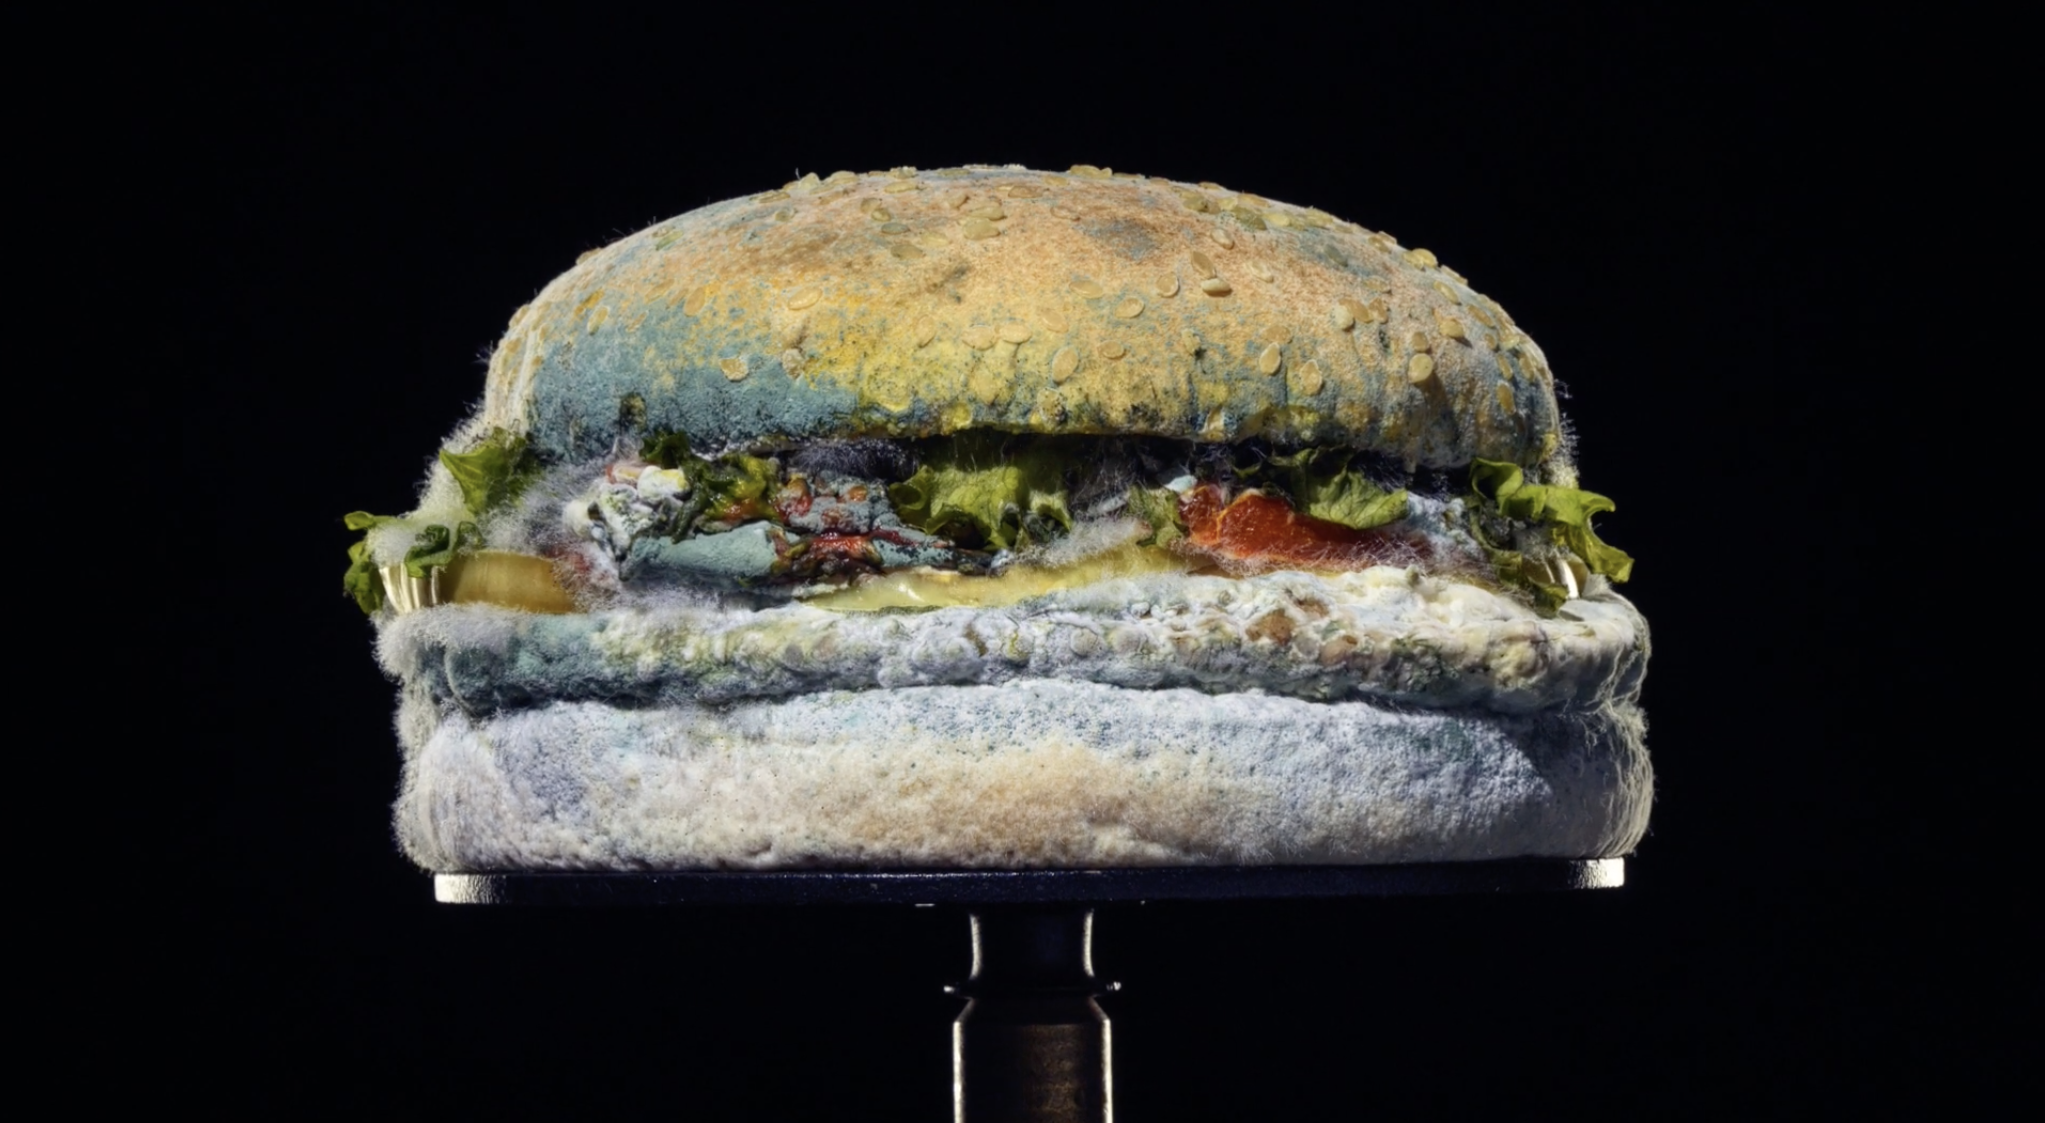 Mouldy burger from Burger King advert